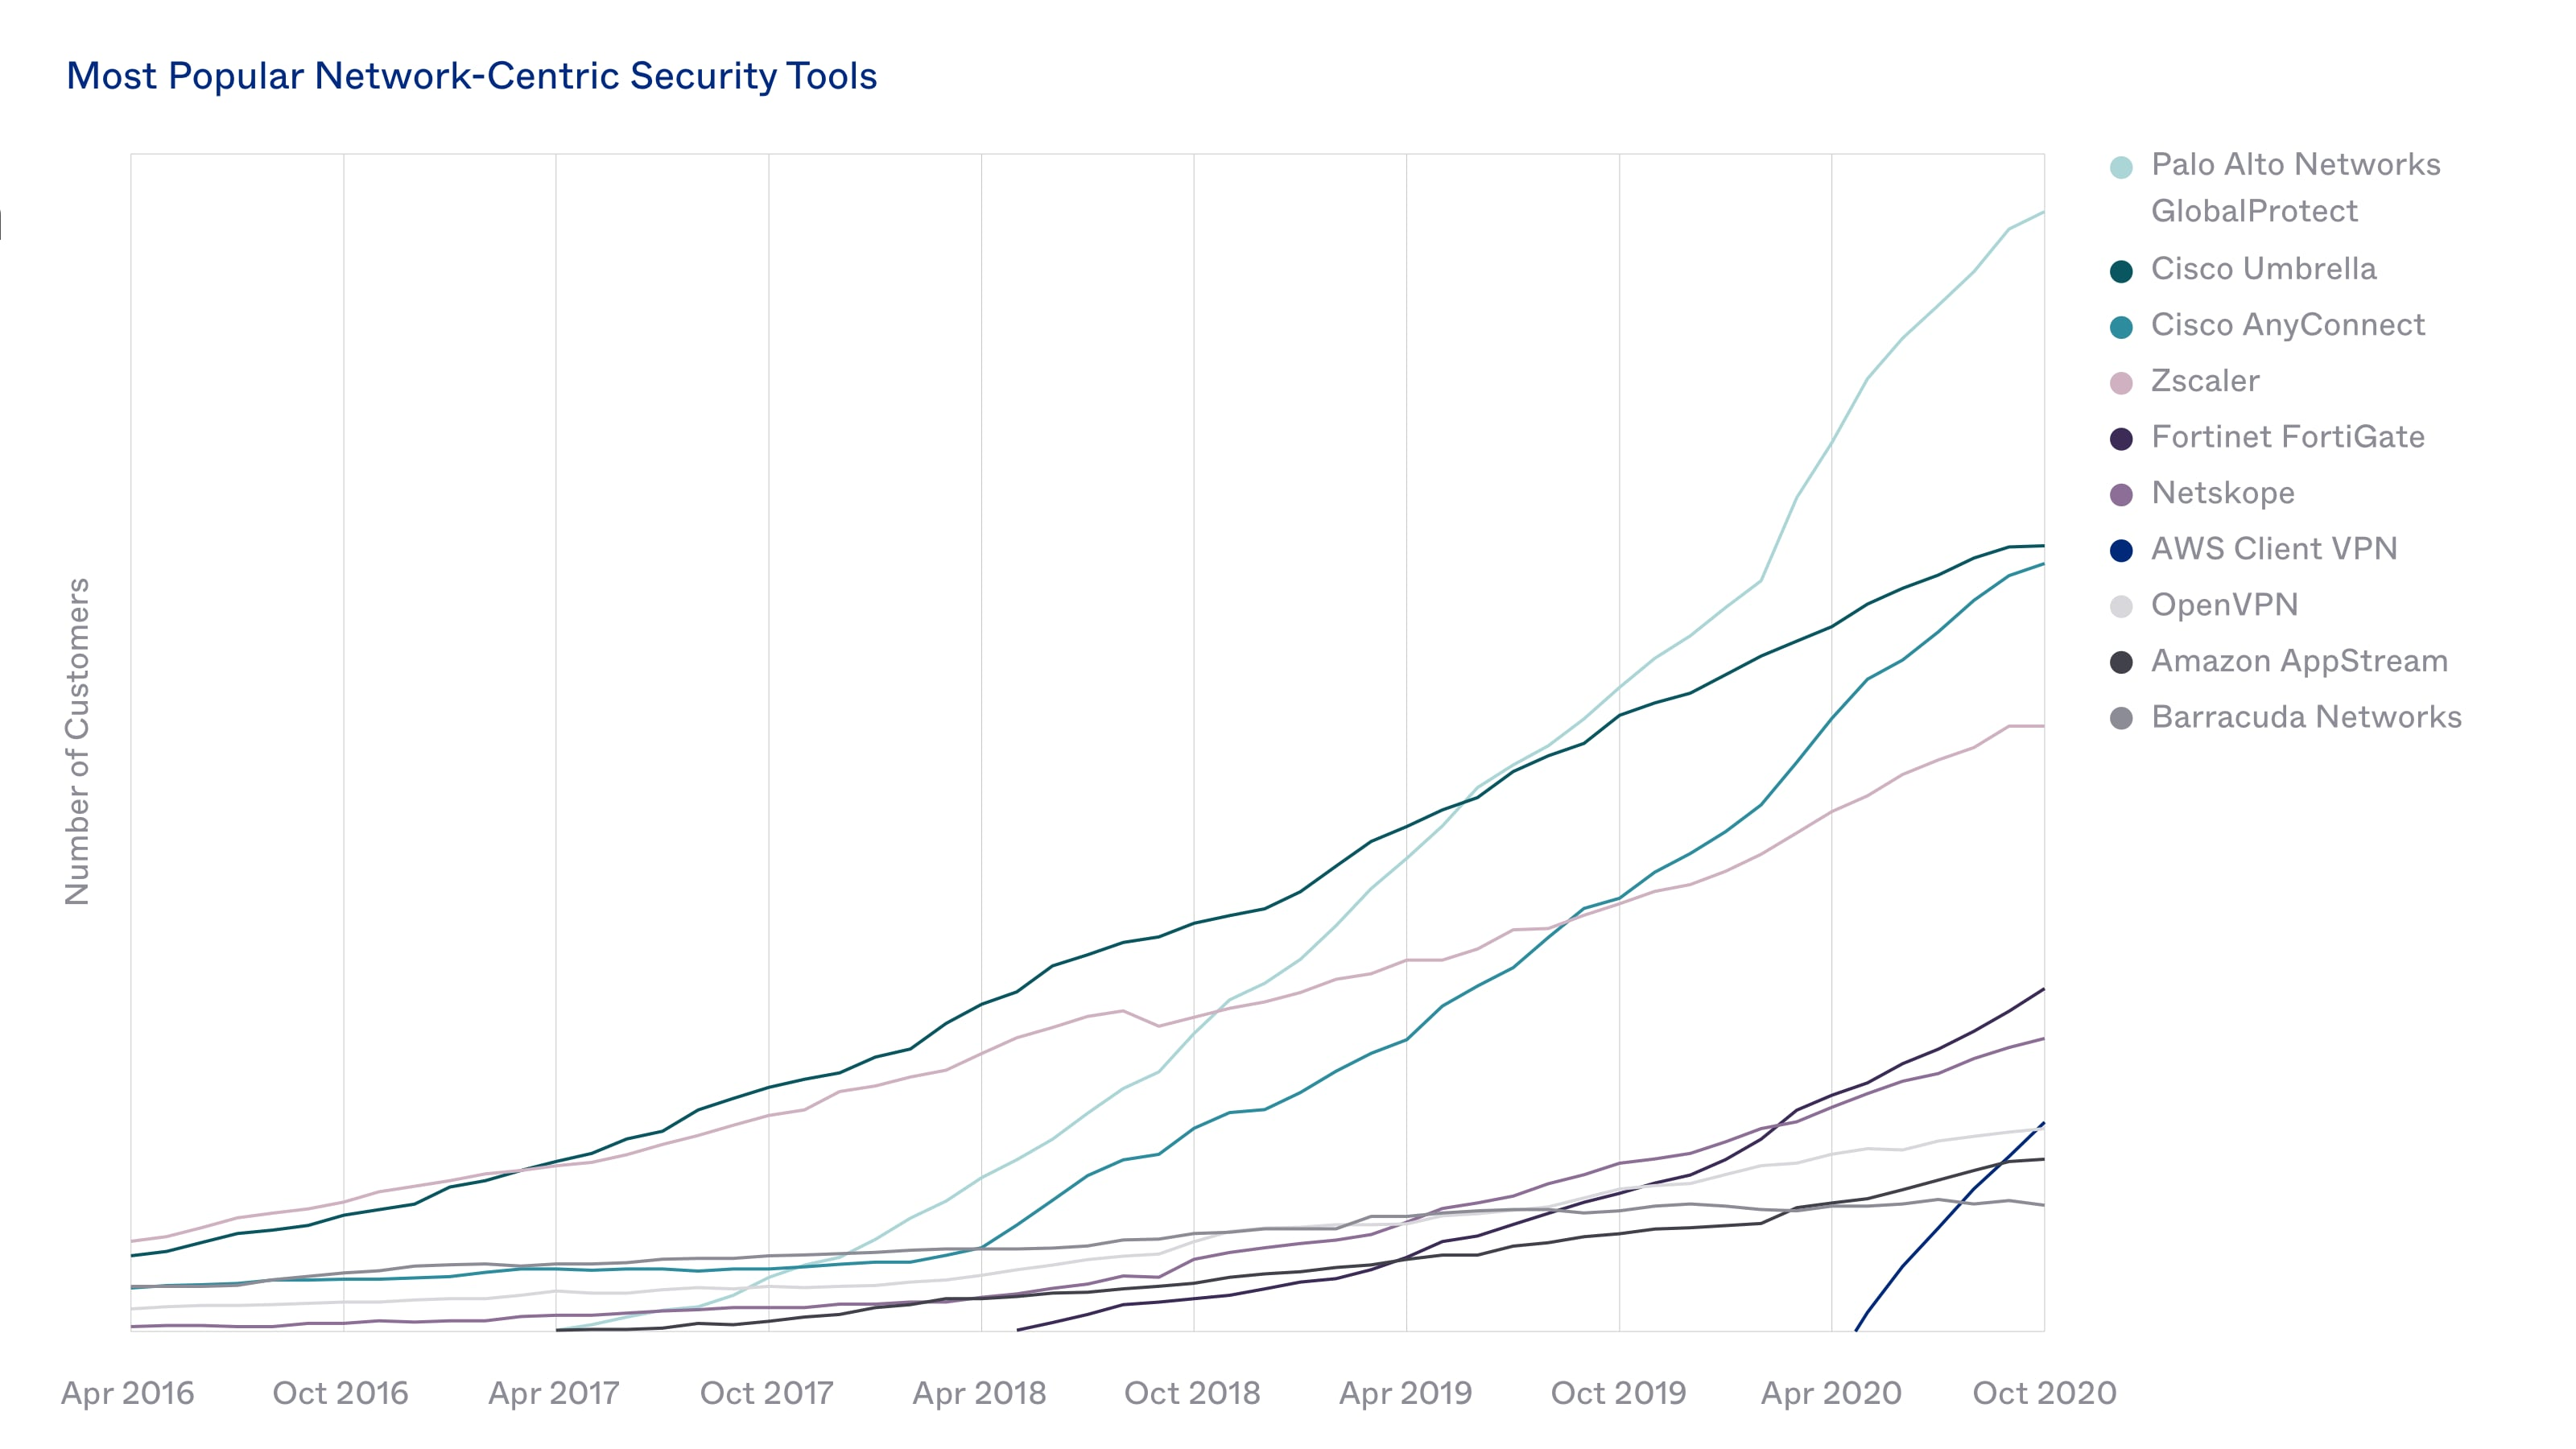 Most Popular Network-Centric Security Tools